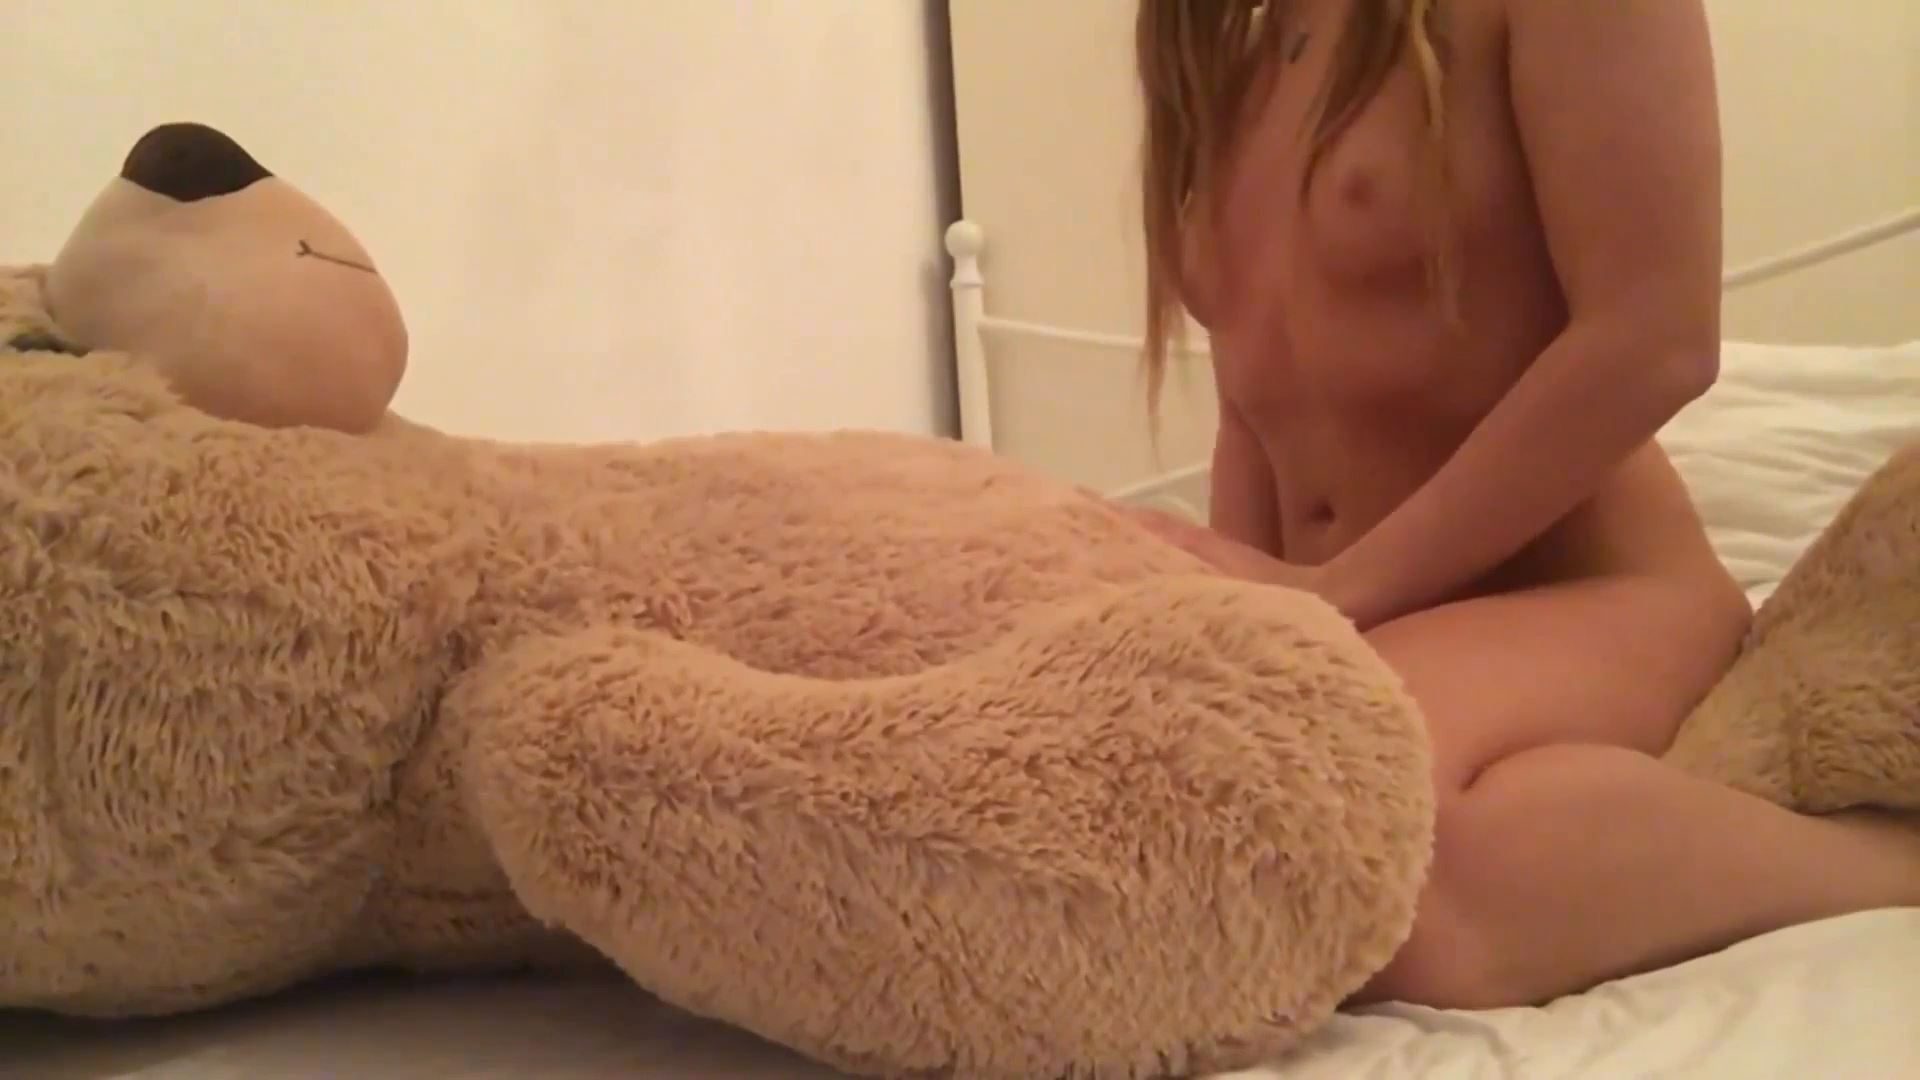 Kinky cat - playing with her real toy BEAR - BIZARRE GODDESSES - FULL HD/1080p/MP4